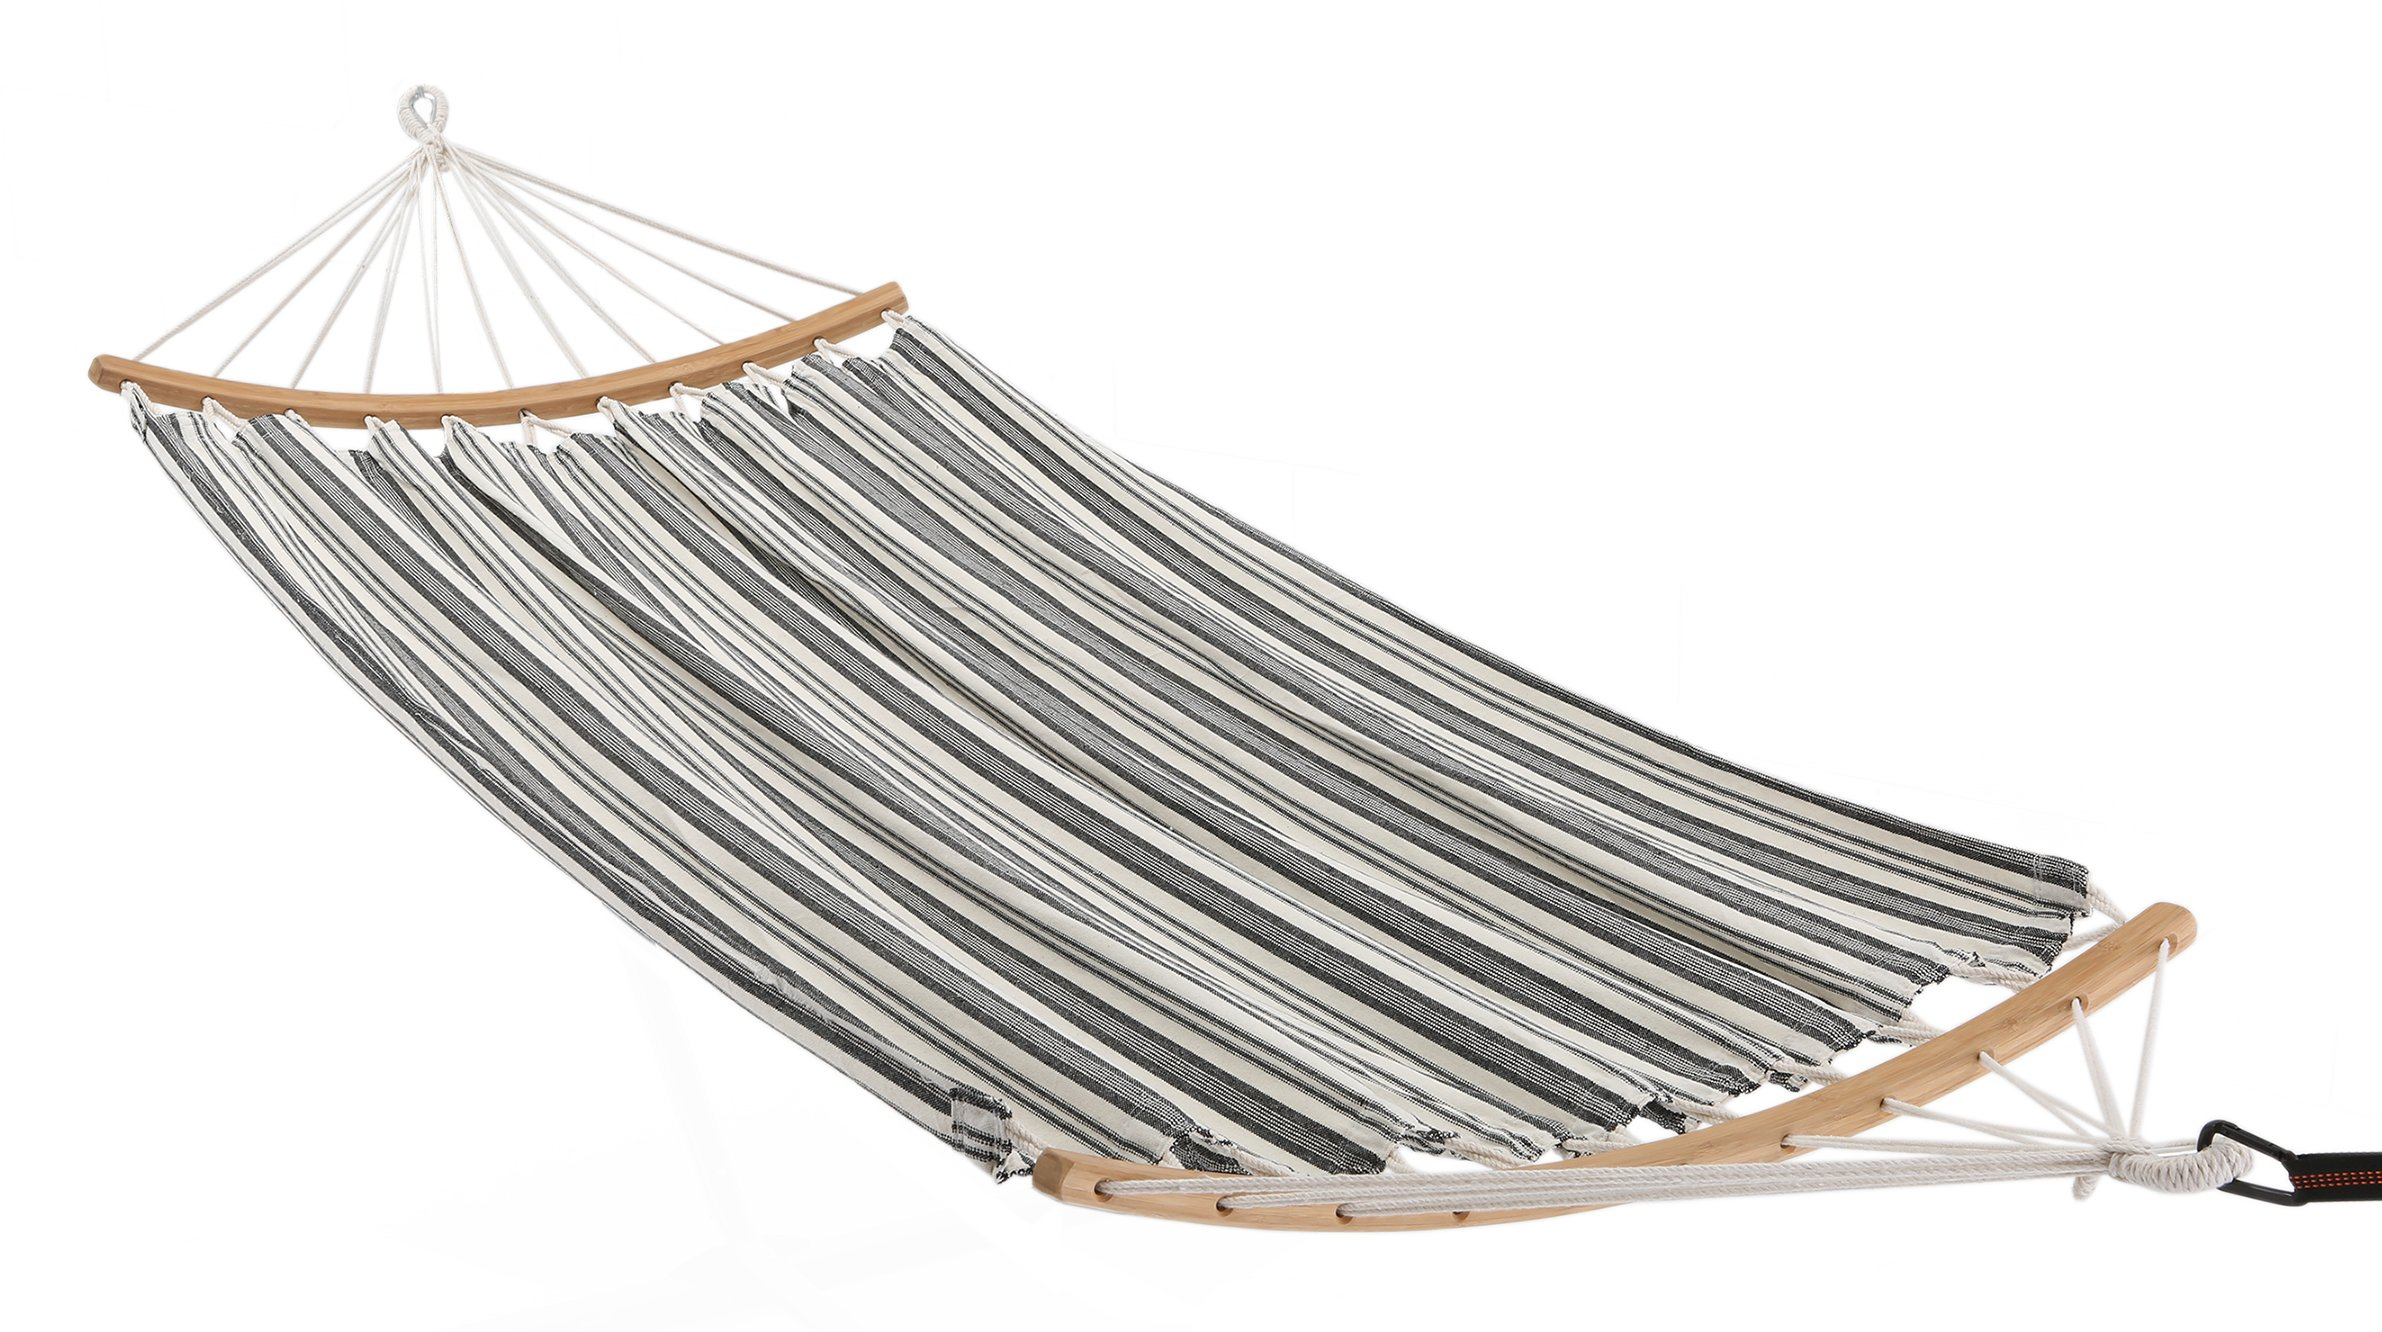 ELC Hammock Cotton Fabric Hammock Double Hammock with Bamboo Spreader Bars, Perfect for Garden Outdoor Patio Yard - Dimensions: ELC HAMMOCK double hammock is large enough to hold 2 persons. The total length (from loop to loop) is 10-feet while the bed resting area is 80 inches Long x 60 inches Wide. And it's designed to safely support a maximum capacity of 330 pounds. Stable & Comfort: This cotton hammocks are tightly woven with comfortable, long-lasting thread that gives the user a euphoric feeling of of laying on a soft sponge. 45 inches durable bamboo spreader bar with powder coated in an oil rubbed finish keeps itself clean, making it more stable and maximizing style. Easy to Use: There is a 45 inches curved bamboo bar at each end with drilled out holes spaced throughout for the support ropes to go through. Each rope is super thick and braided for maximum durability and support. All ropes collect together and weave into a very pretty triangle pattern, which attaches to a ring. Just hang it between two trees with straps or on a hammock stand (NOT INCLUDED). - patio-furniture, patio, hammocks - 81oFbLmK9PL -